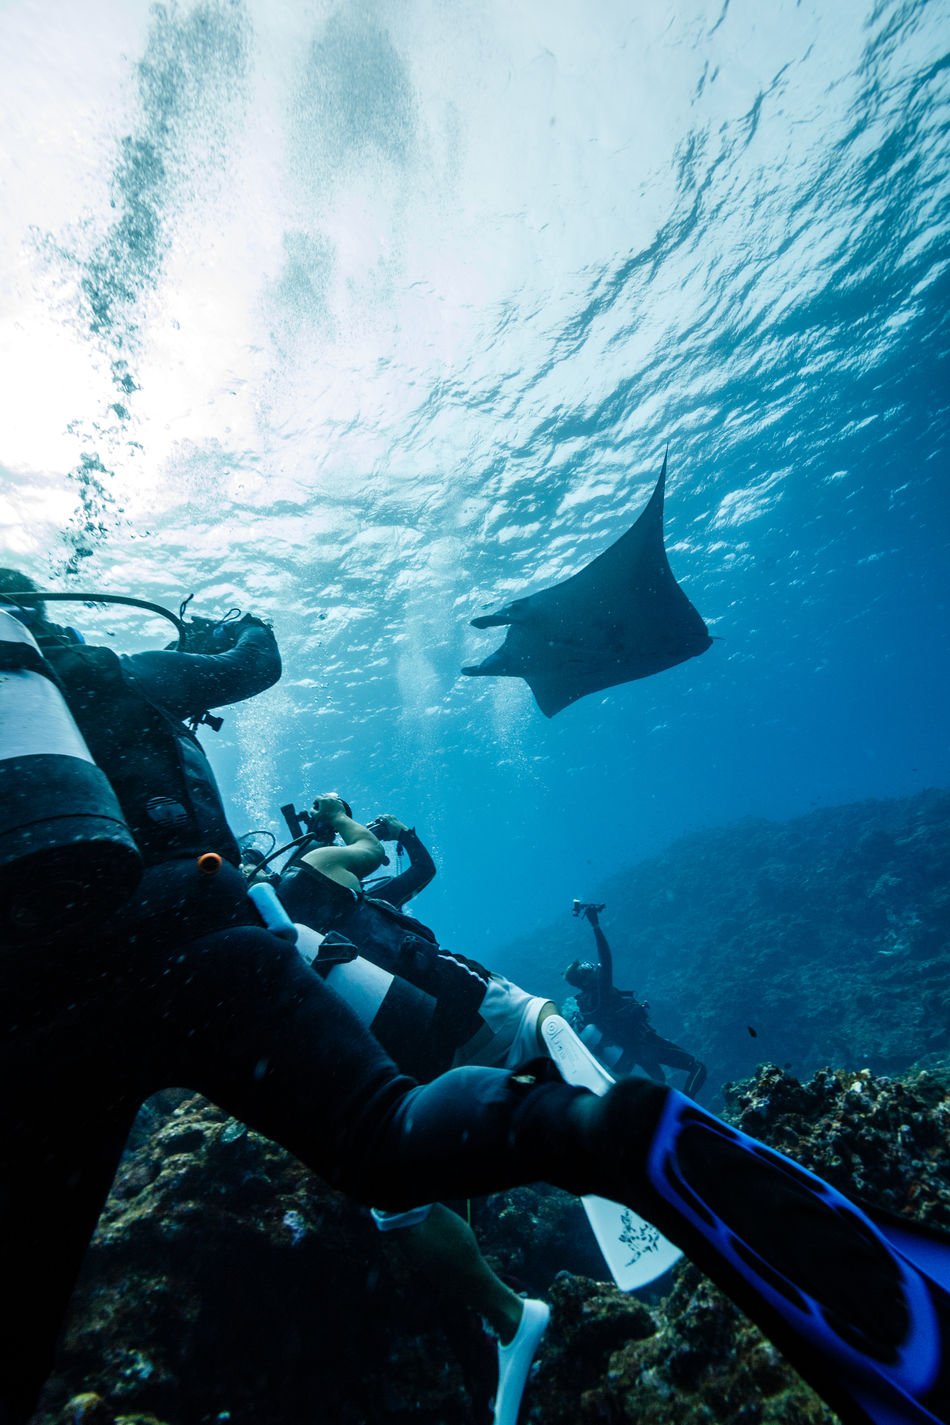 underwater adventure Adventure Behind Day Divers Exploration Flower Human Hand Leisure Activity Lifestyles Men Nature One Person Outdoors People Real People Scuba Diver Scuba Diving Sea Sea Life Swimming Take Picture UnderSea Underwater Watching Water